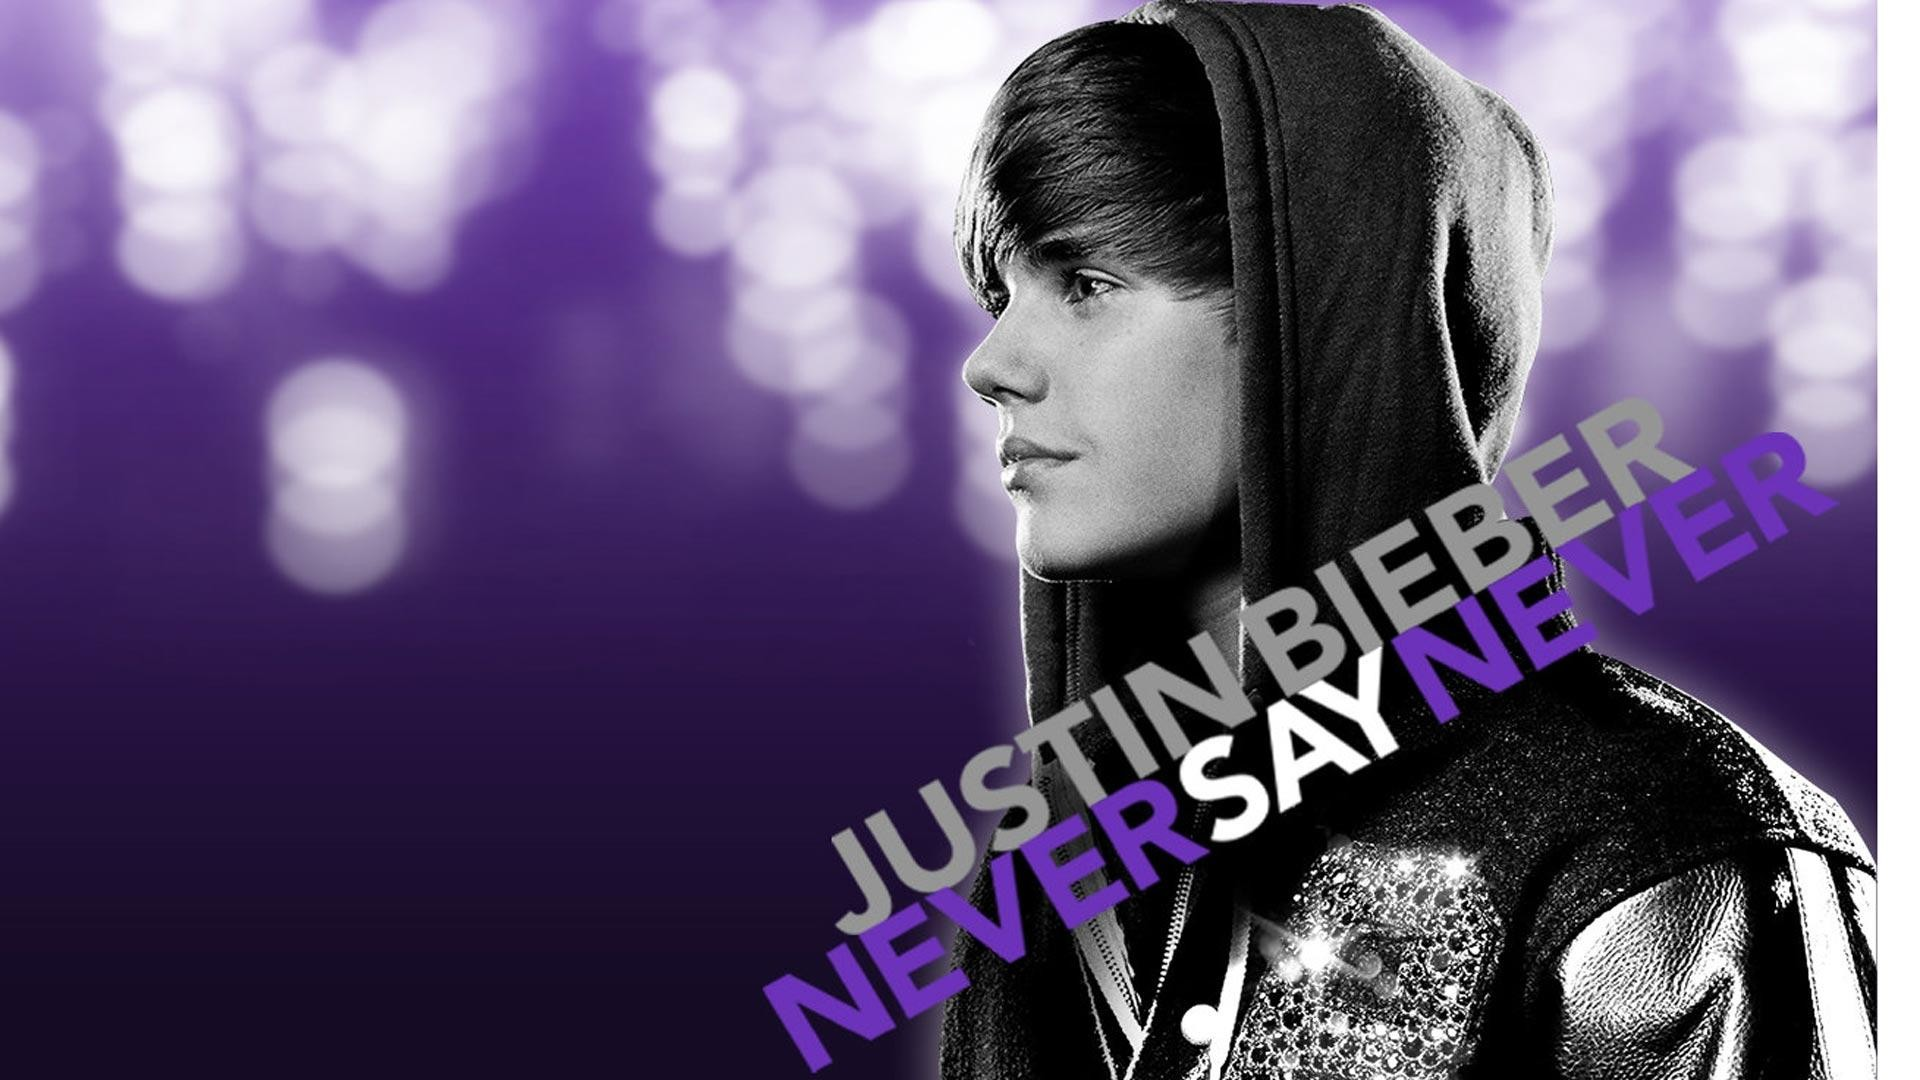 Justin Biber Photo Dwnld: Justin Bieber Wallpaper HD ·① WallpaperTag